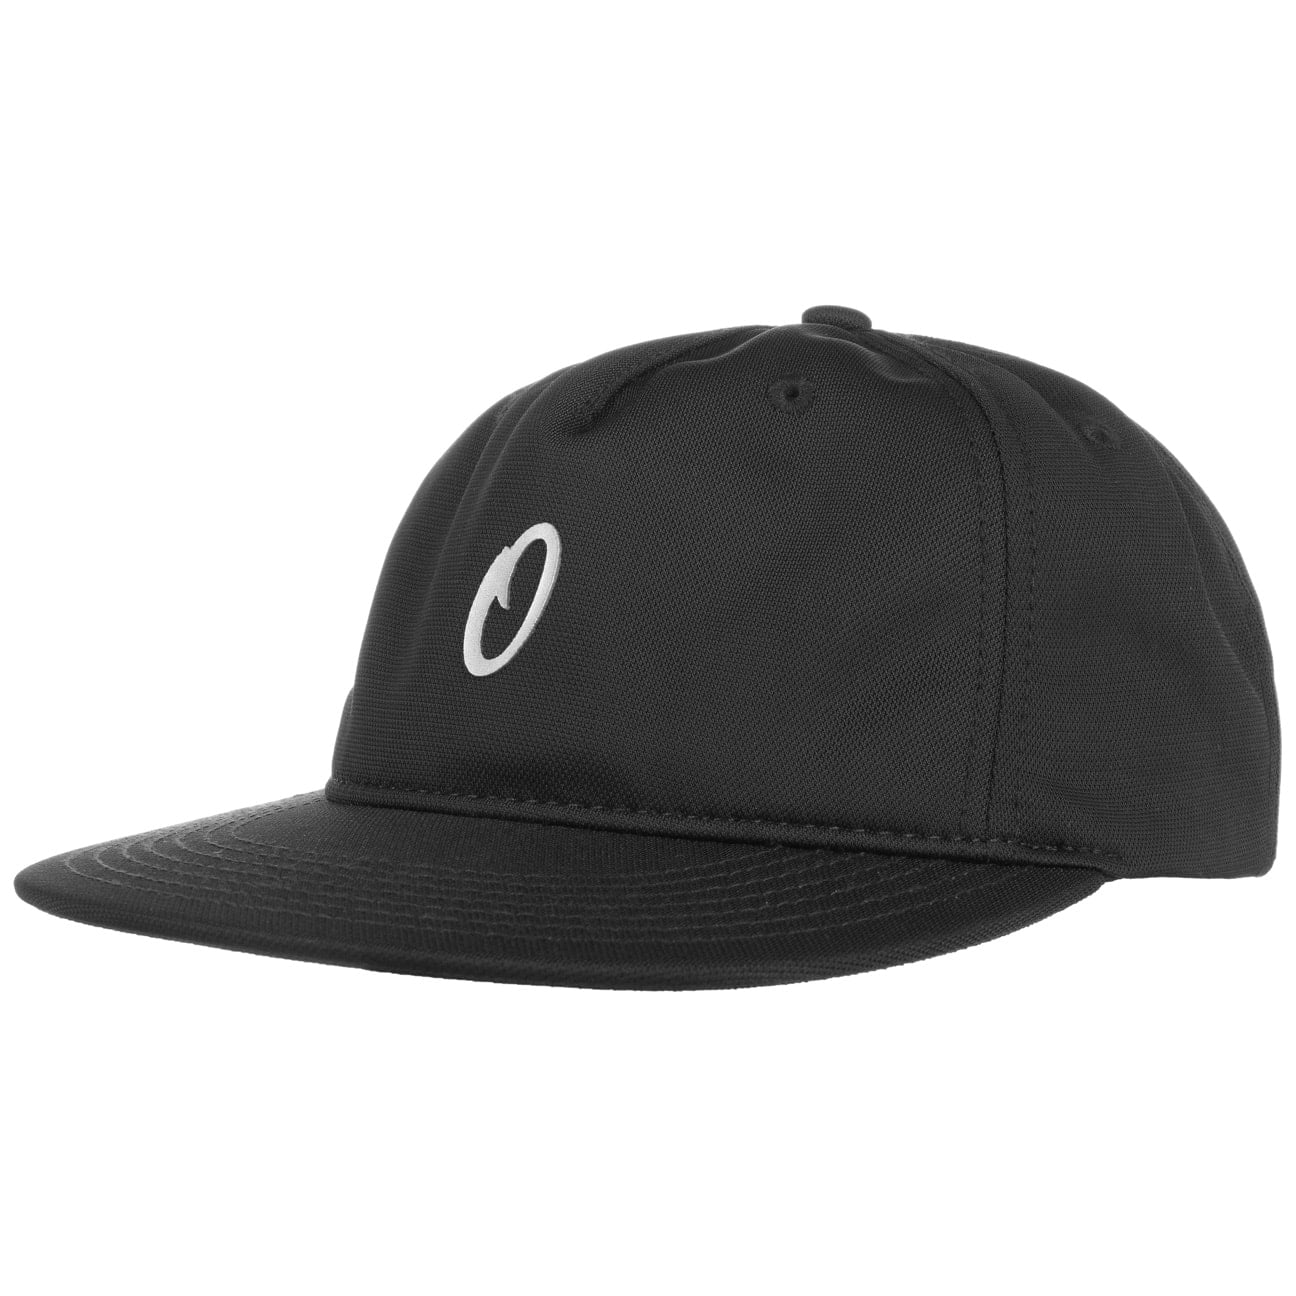 air-luxe-strapback-cap-by-official-headwear-basecap